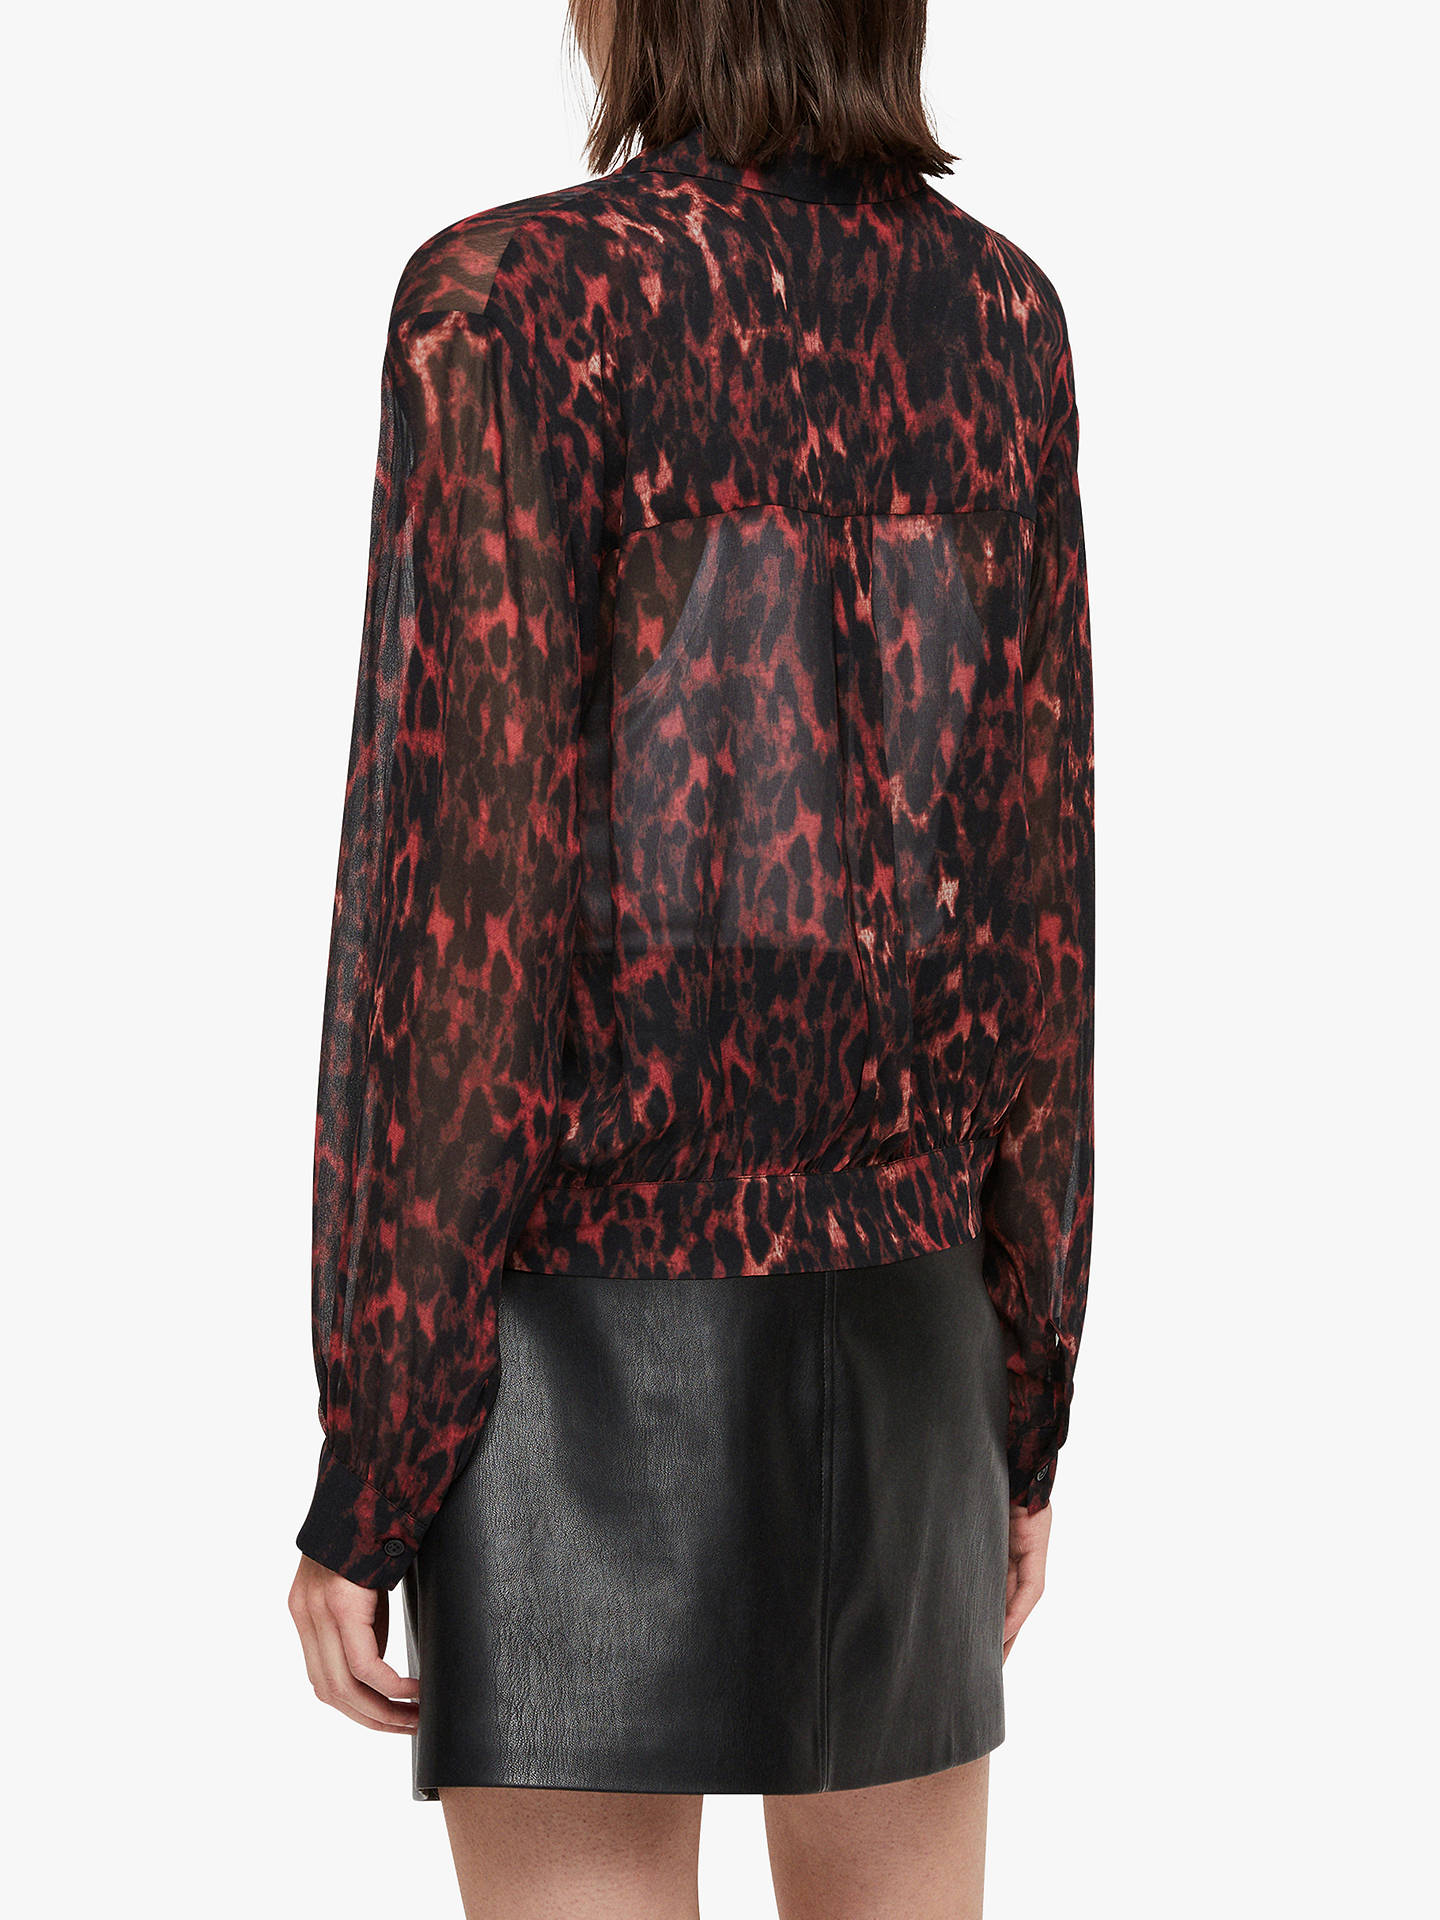 BuyAllSaints Adeliza Leopard Print Shirt, Red, L Online at johnlewis.com